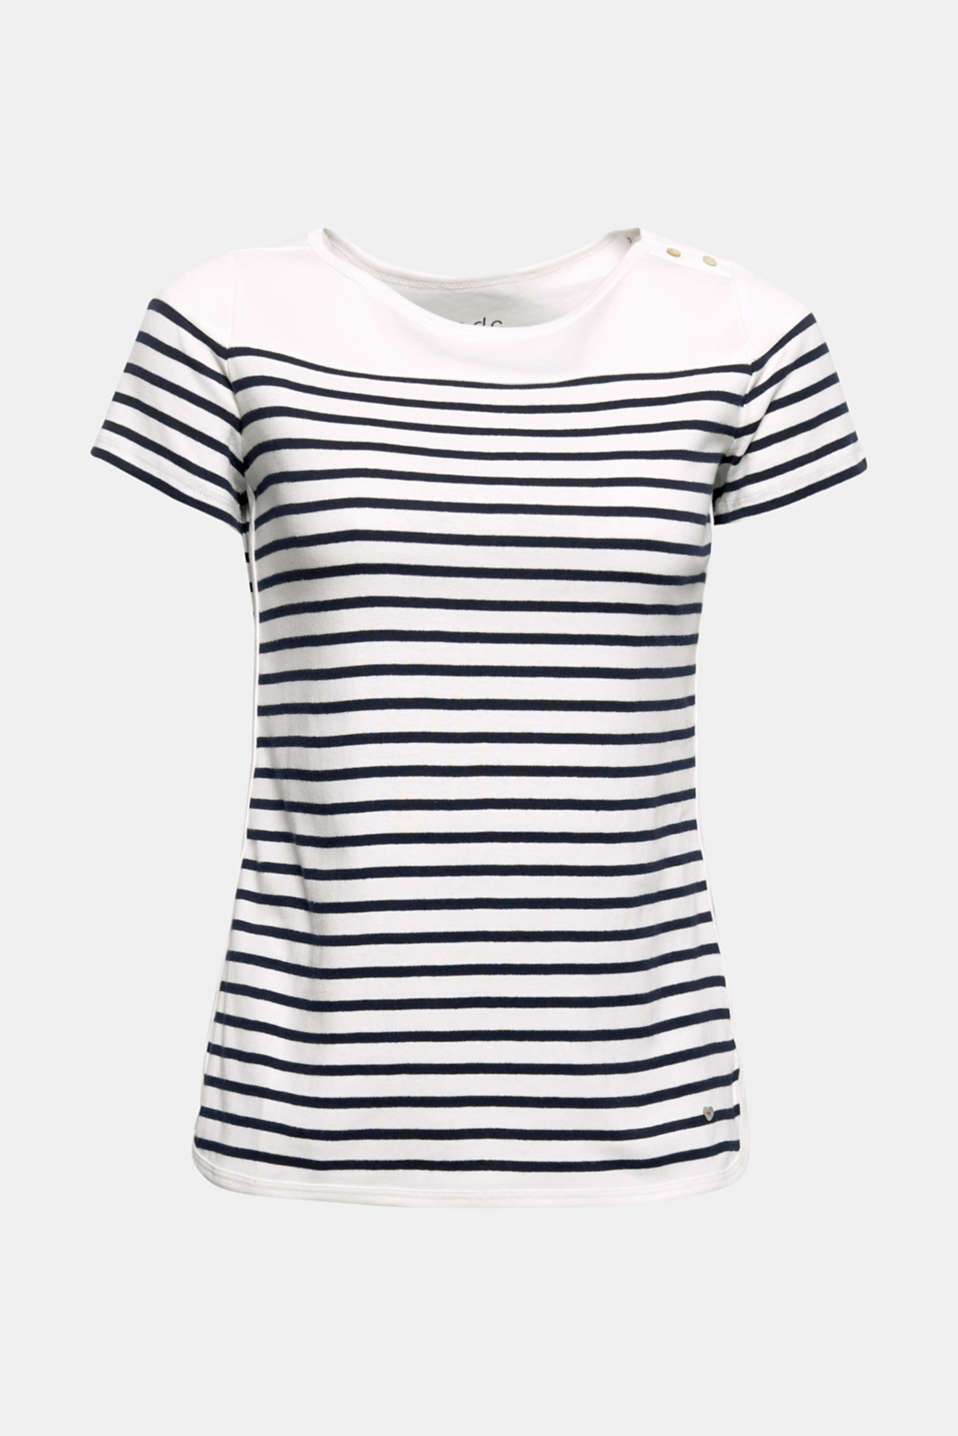 The sporty look and the classic striped look give this T-shirt an urban look.